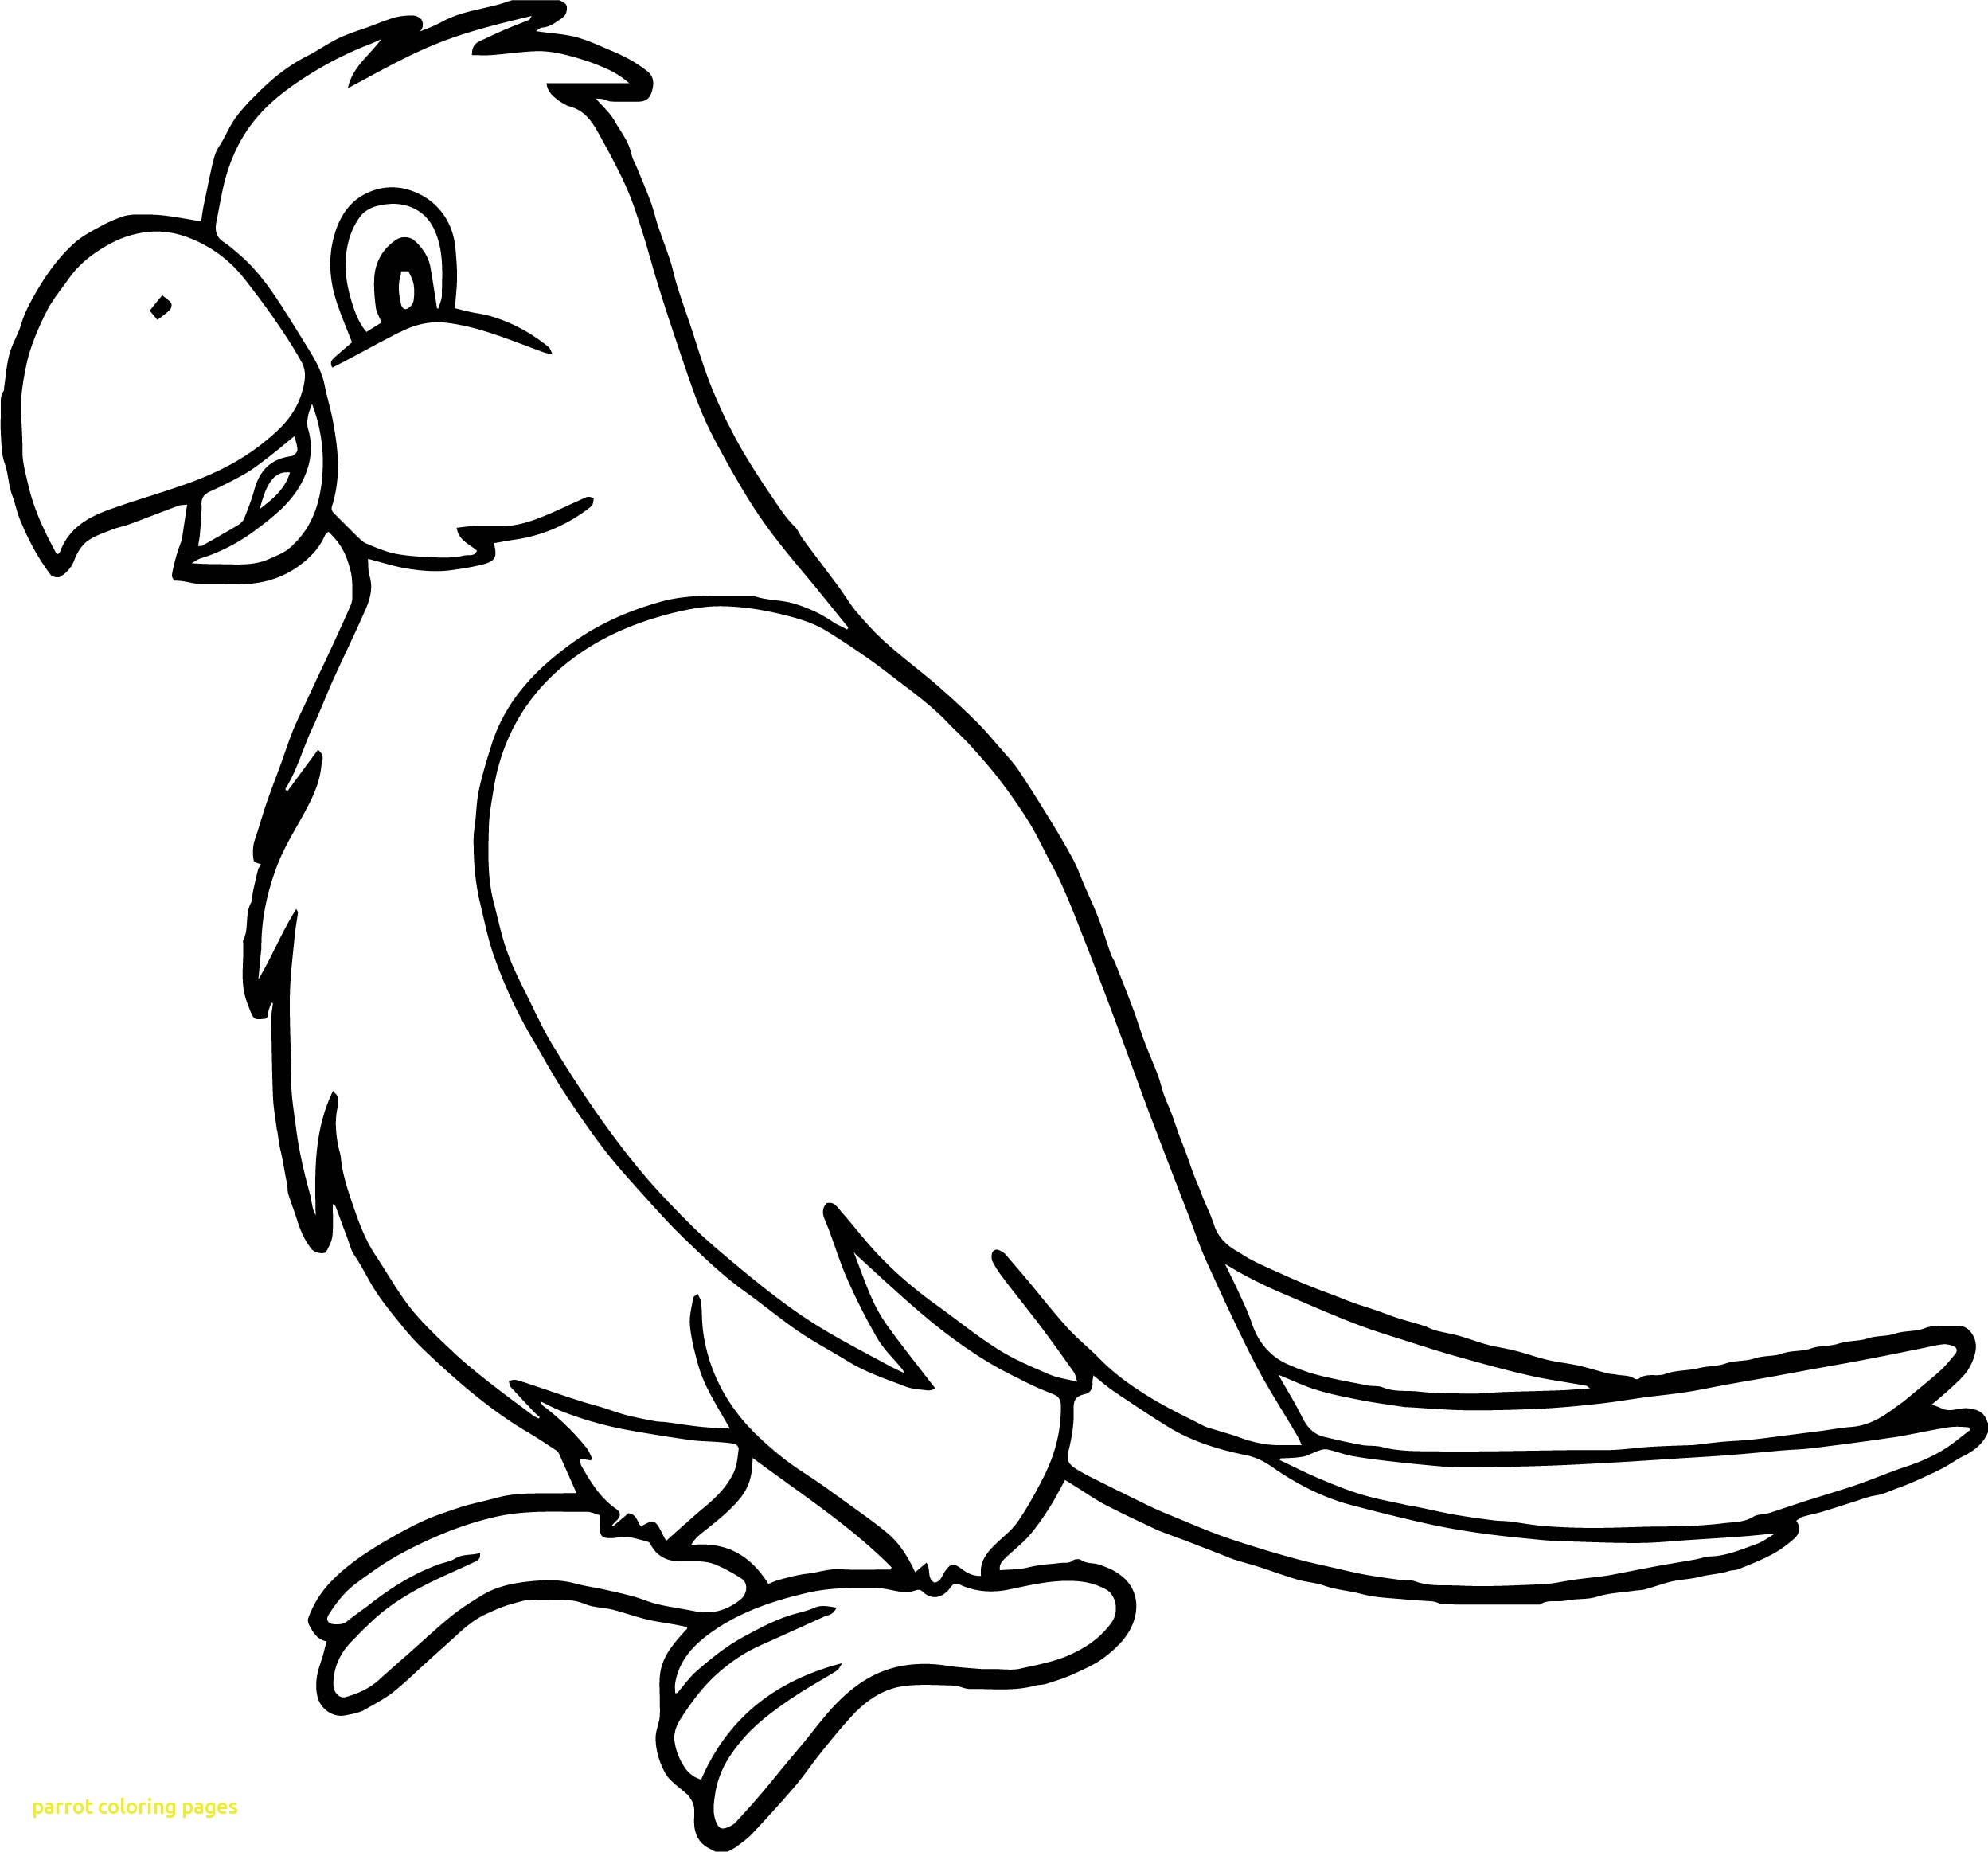 2497x2326 Pirate Parrot Coloring Pages Archives